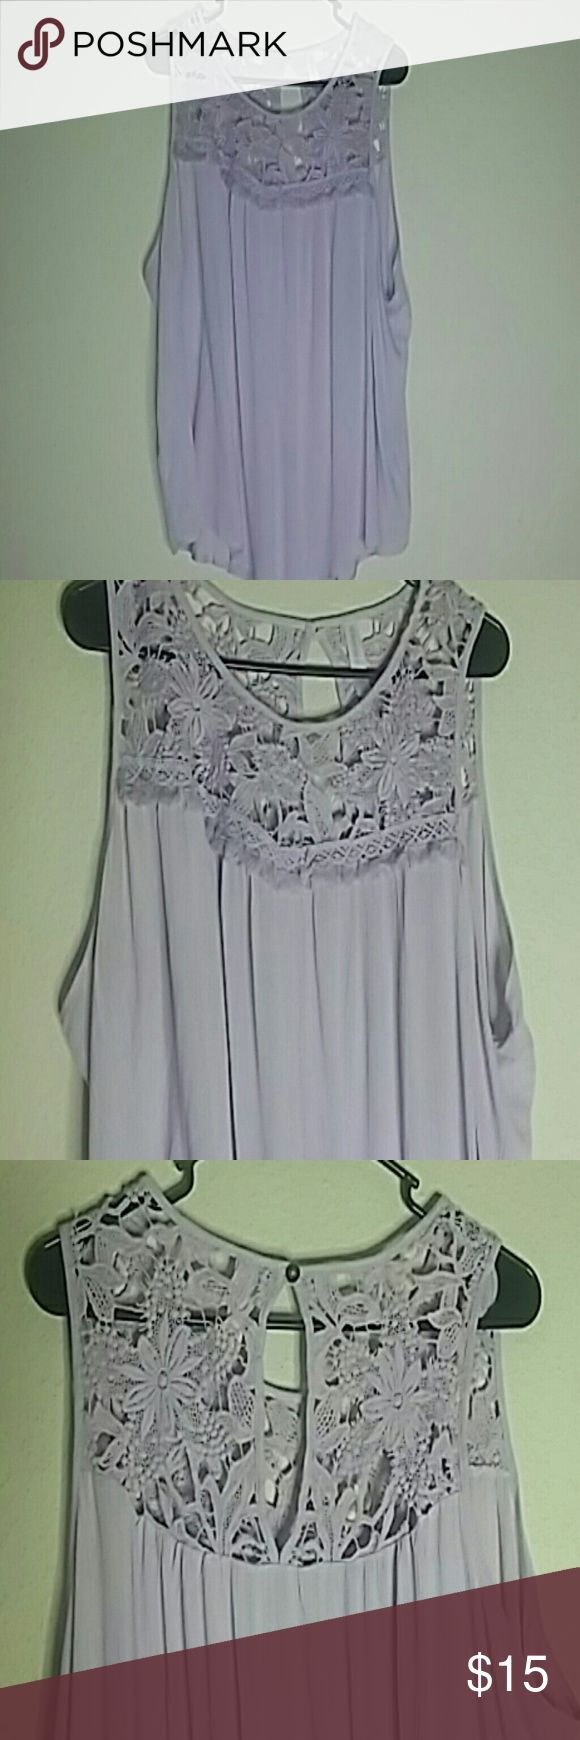 XHILARATION Bohemian Blouse (Tank) Target Brand-Lavender 100% rayon top. Features feminine crochet front and back neck line with peak-a-boo back. Great for layering. SIZE XXL. No trades!! Tops Blouses